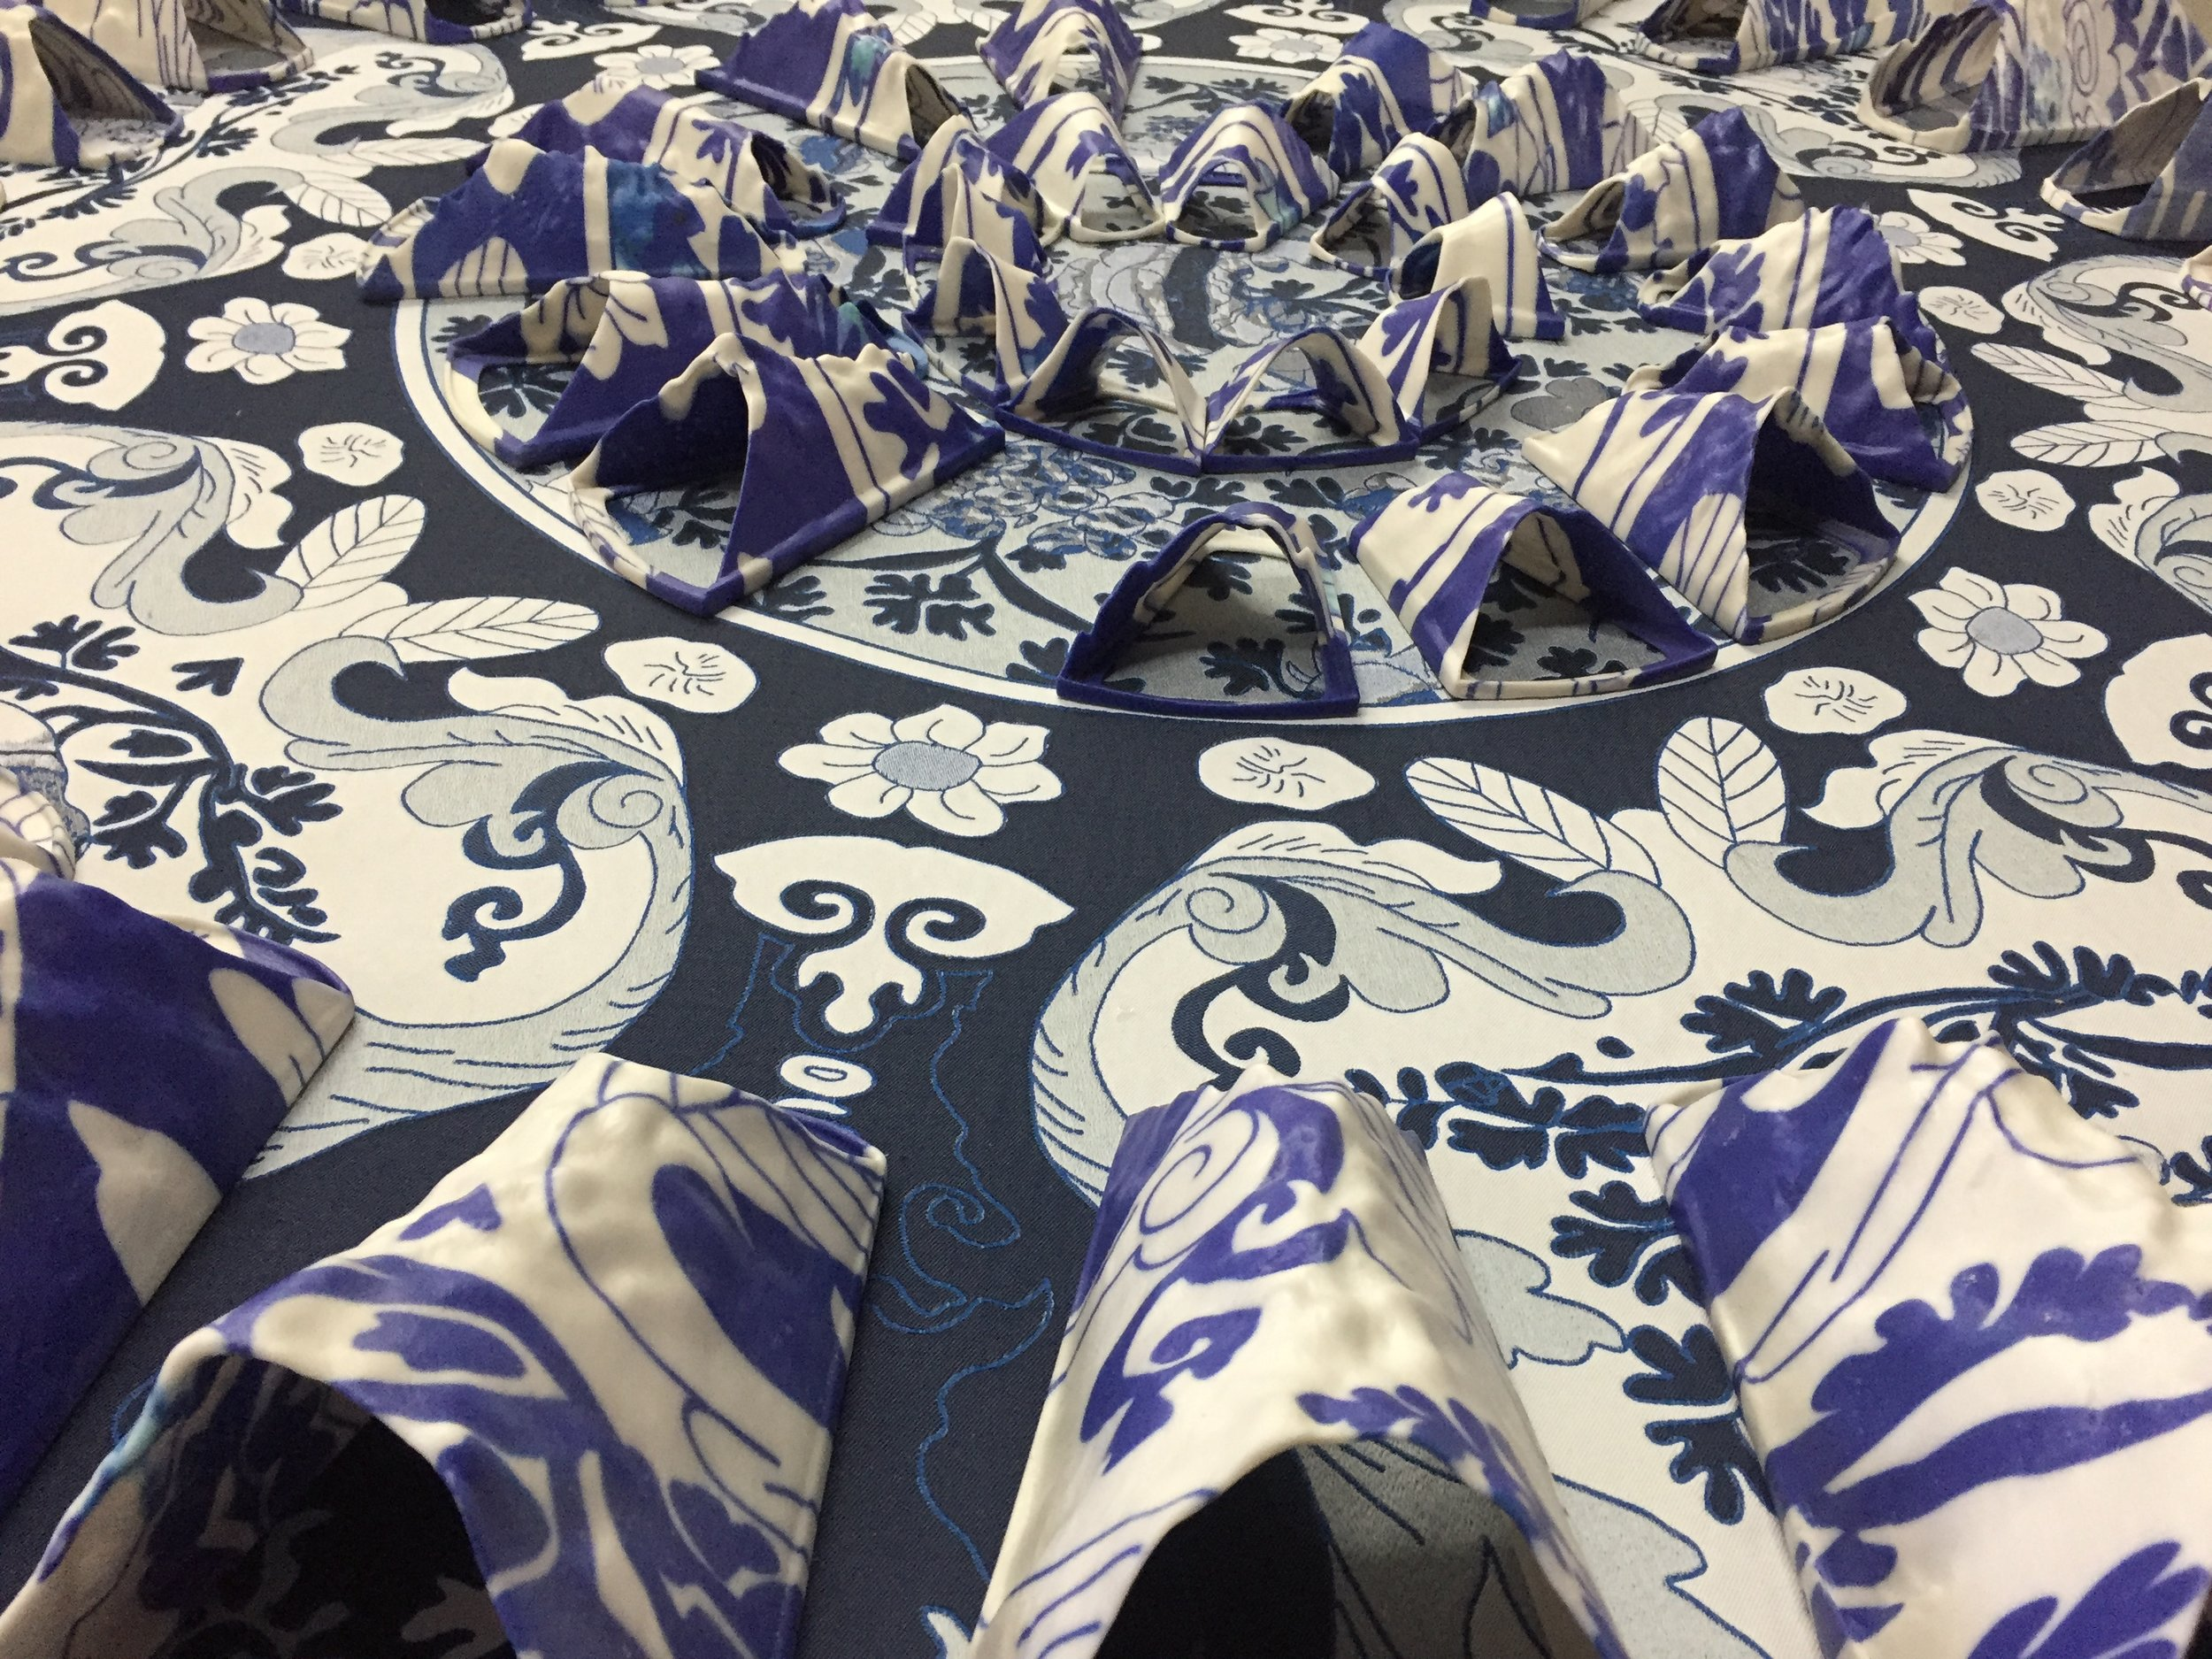 Delft Blue Jacquard and 3D Printing